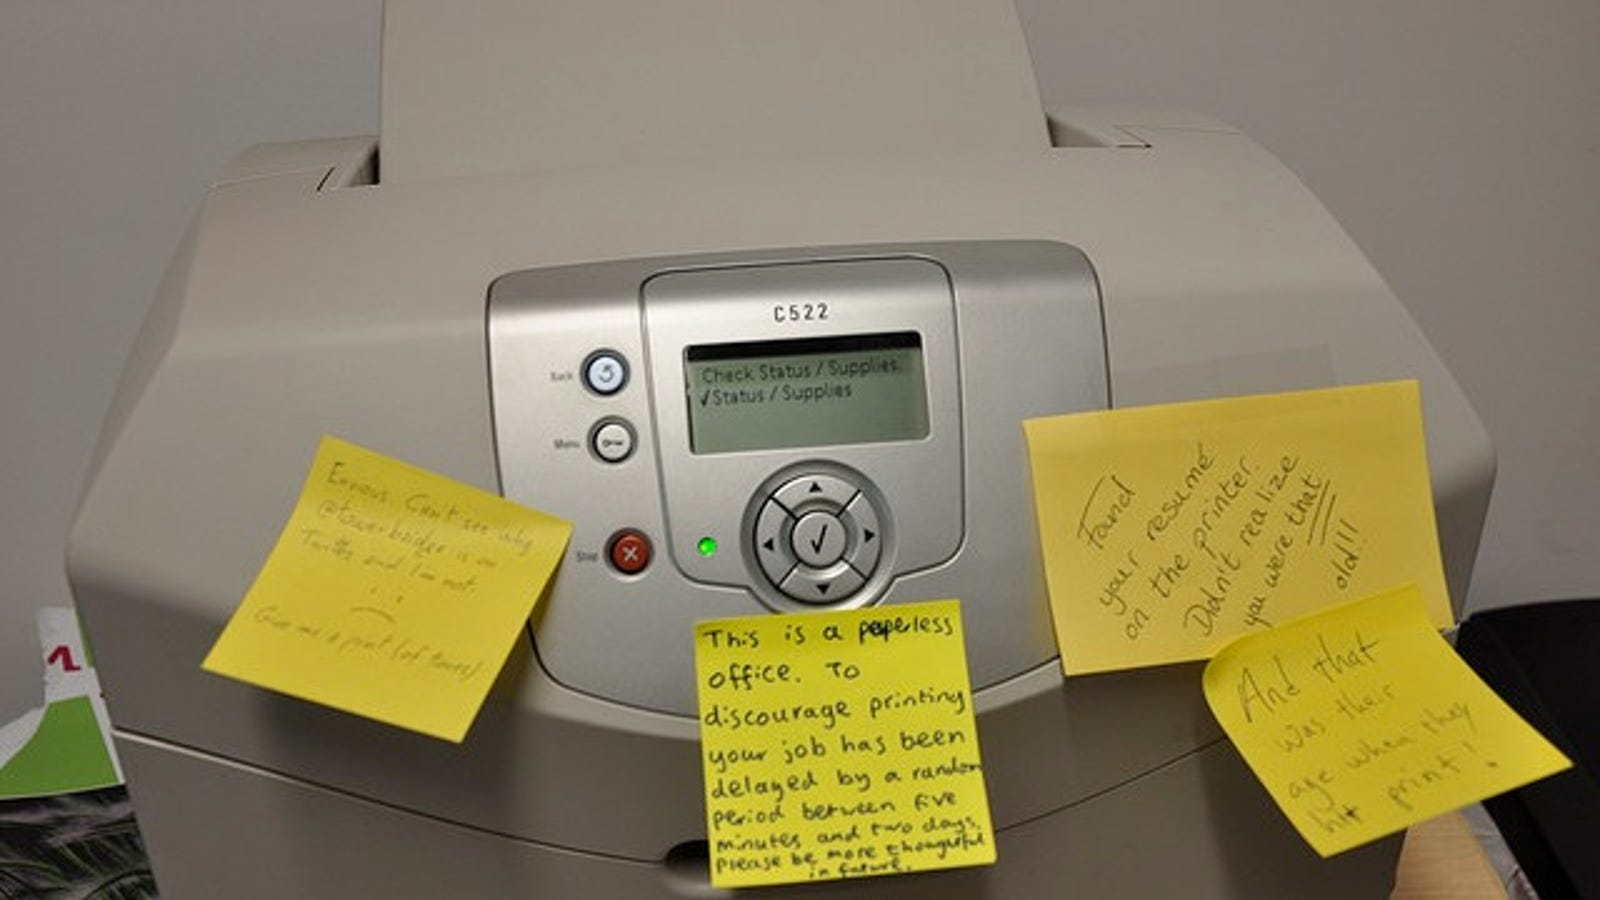 Get More Pages Out of Your Printer When the Toner is Low by Covering